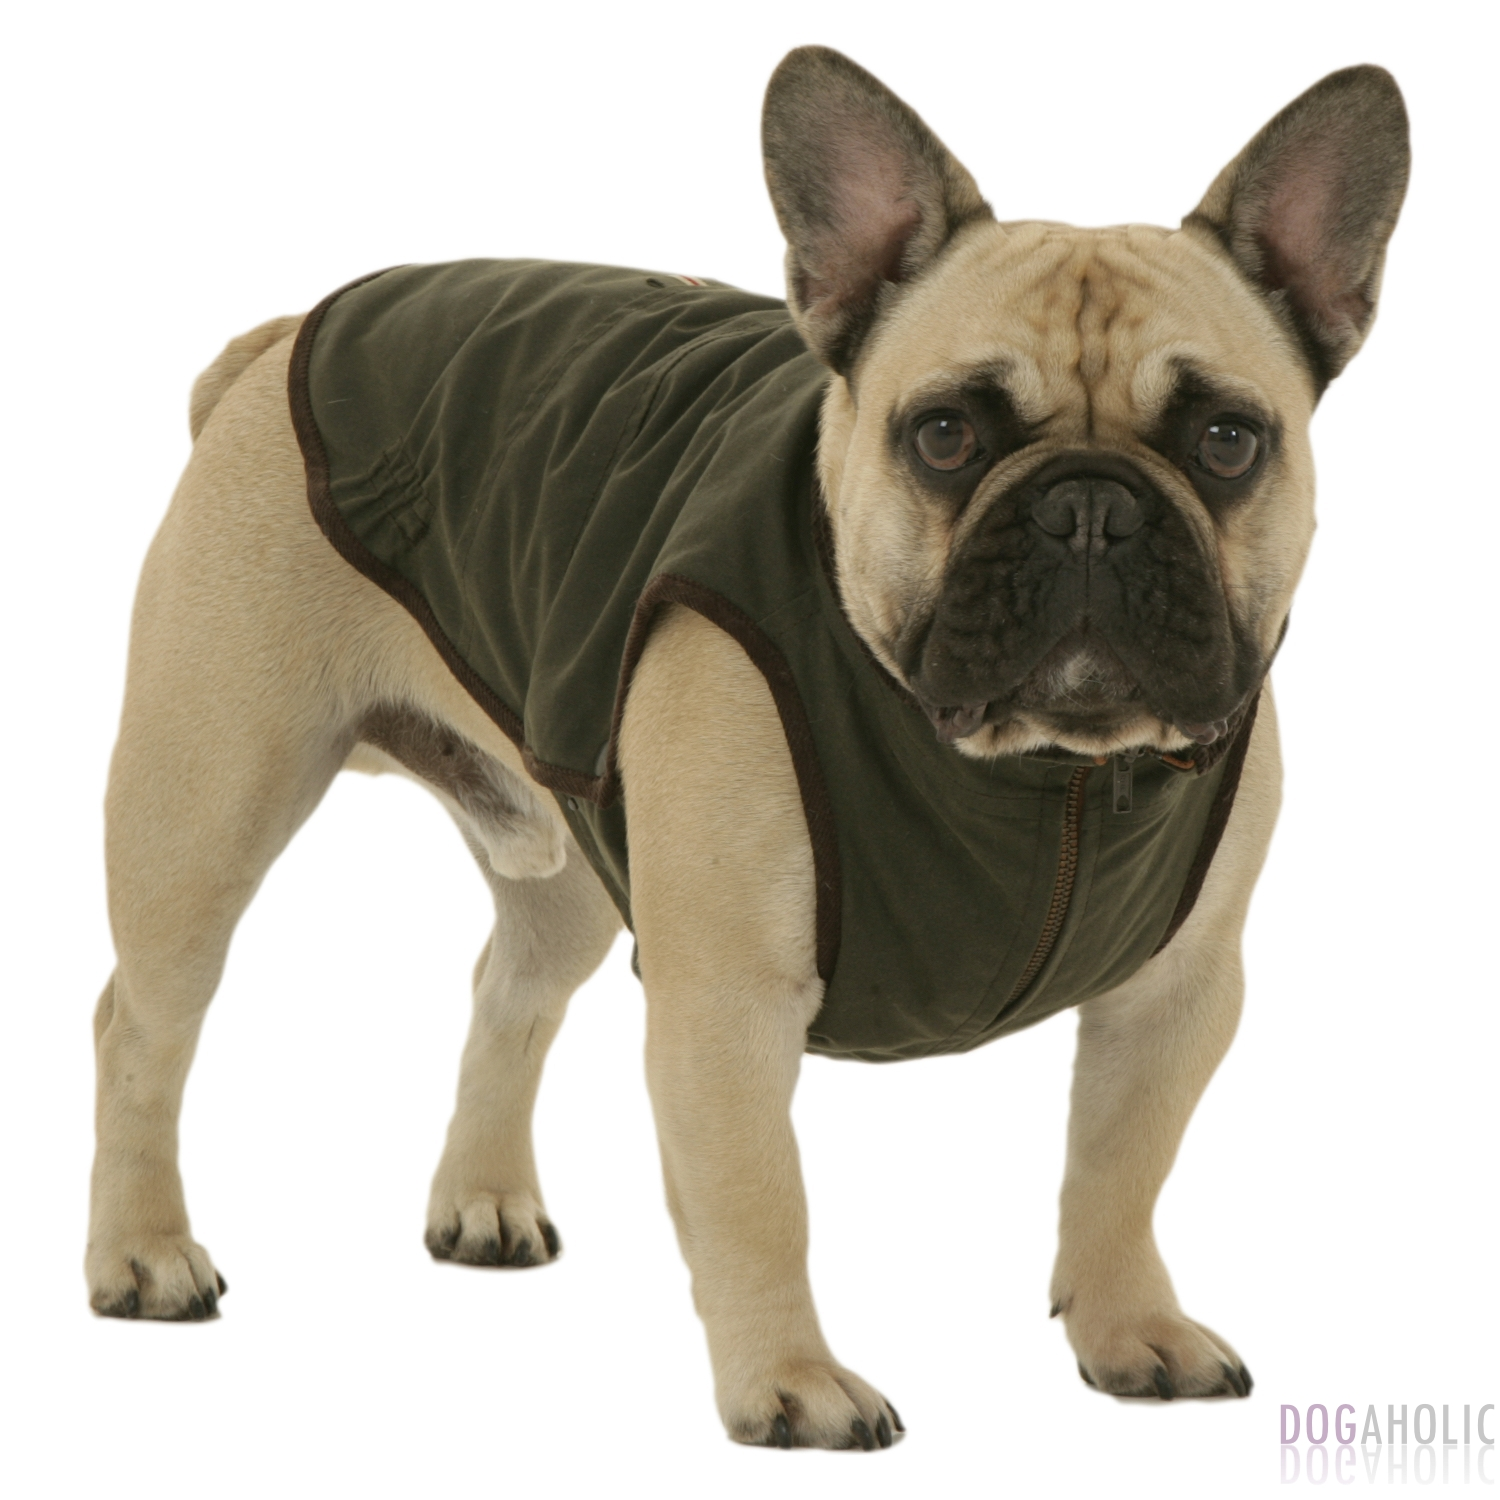 Dogissimo Windsor Coat For French Bulldogs Dogaholic